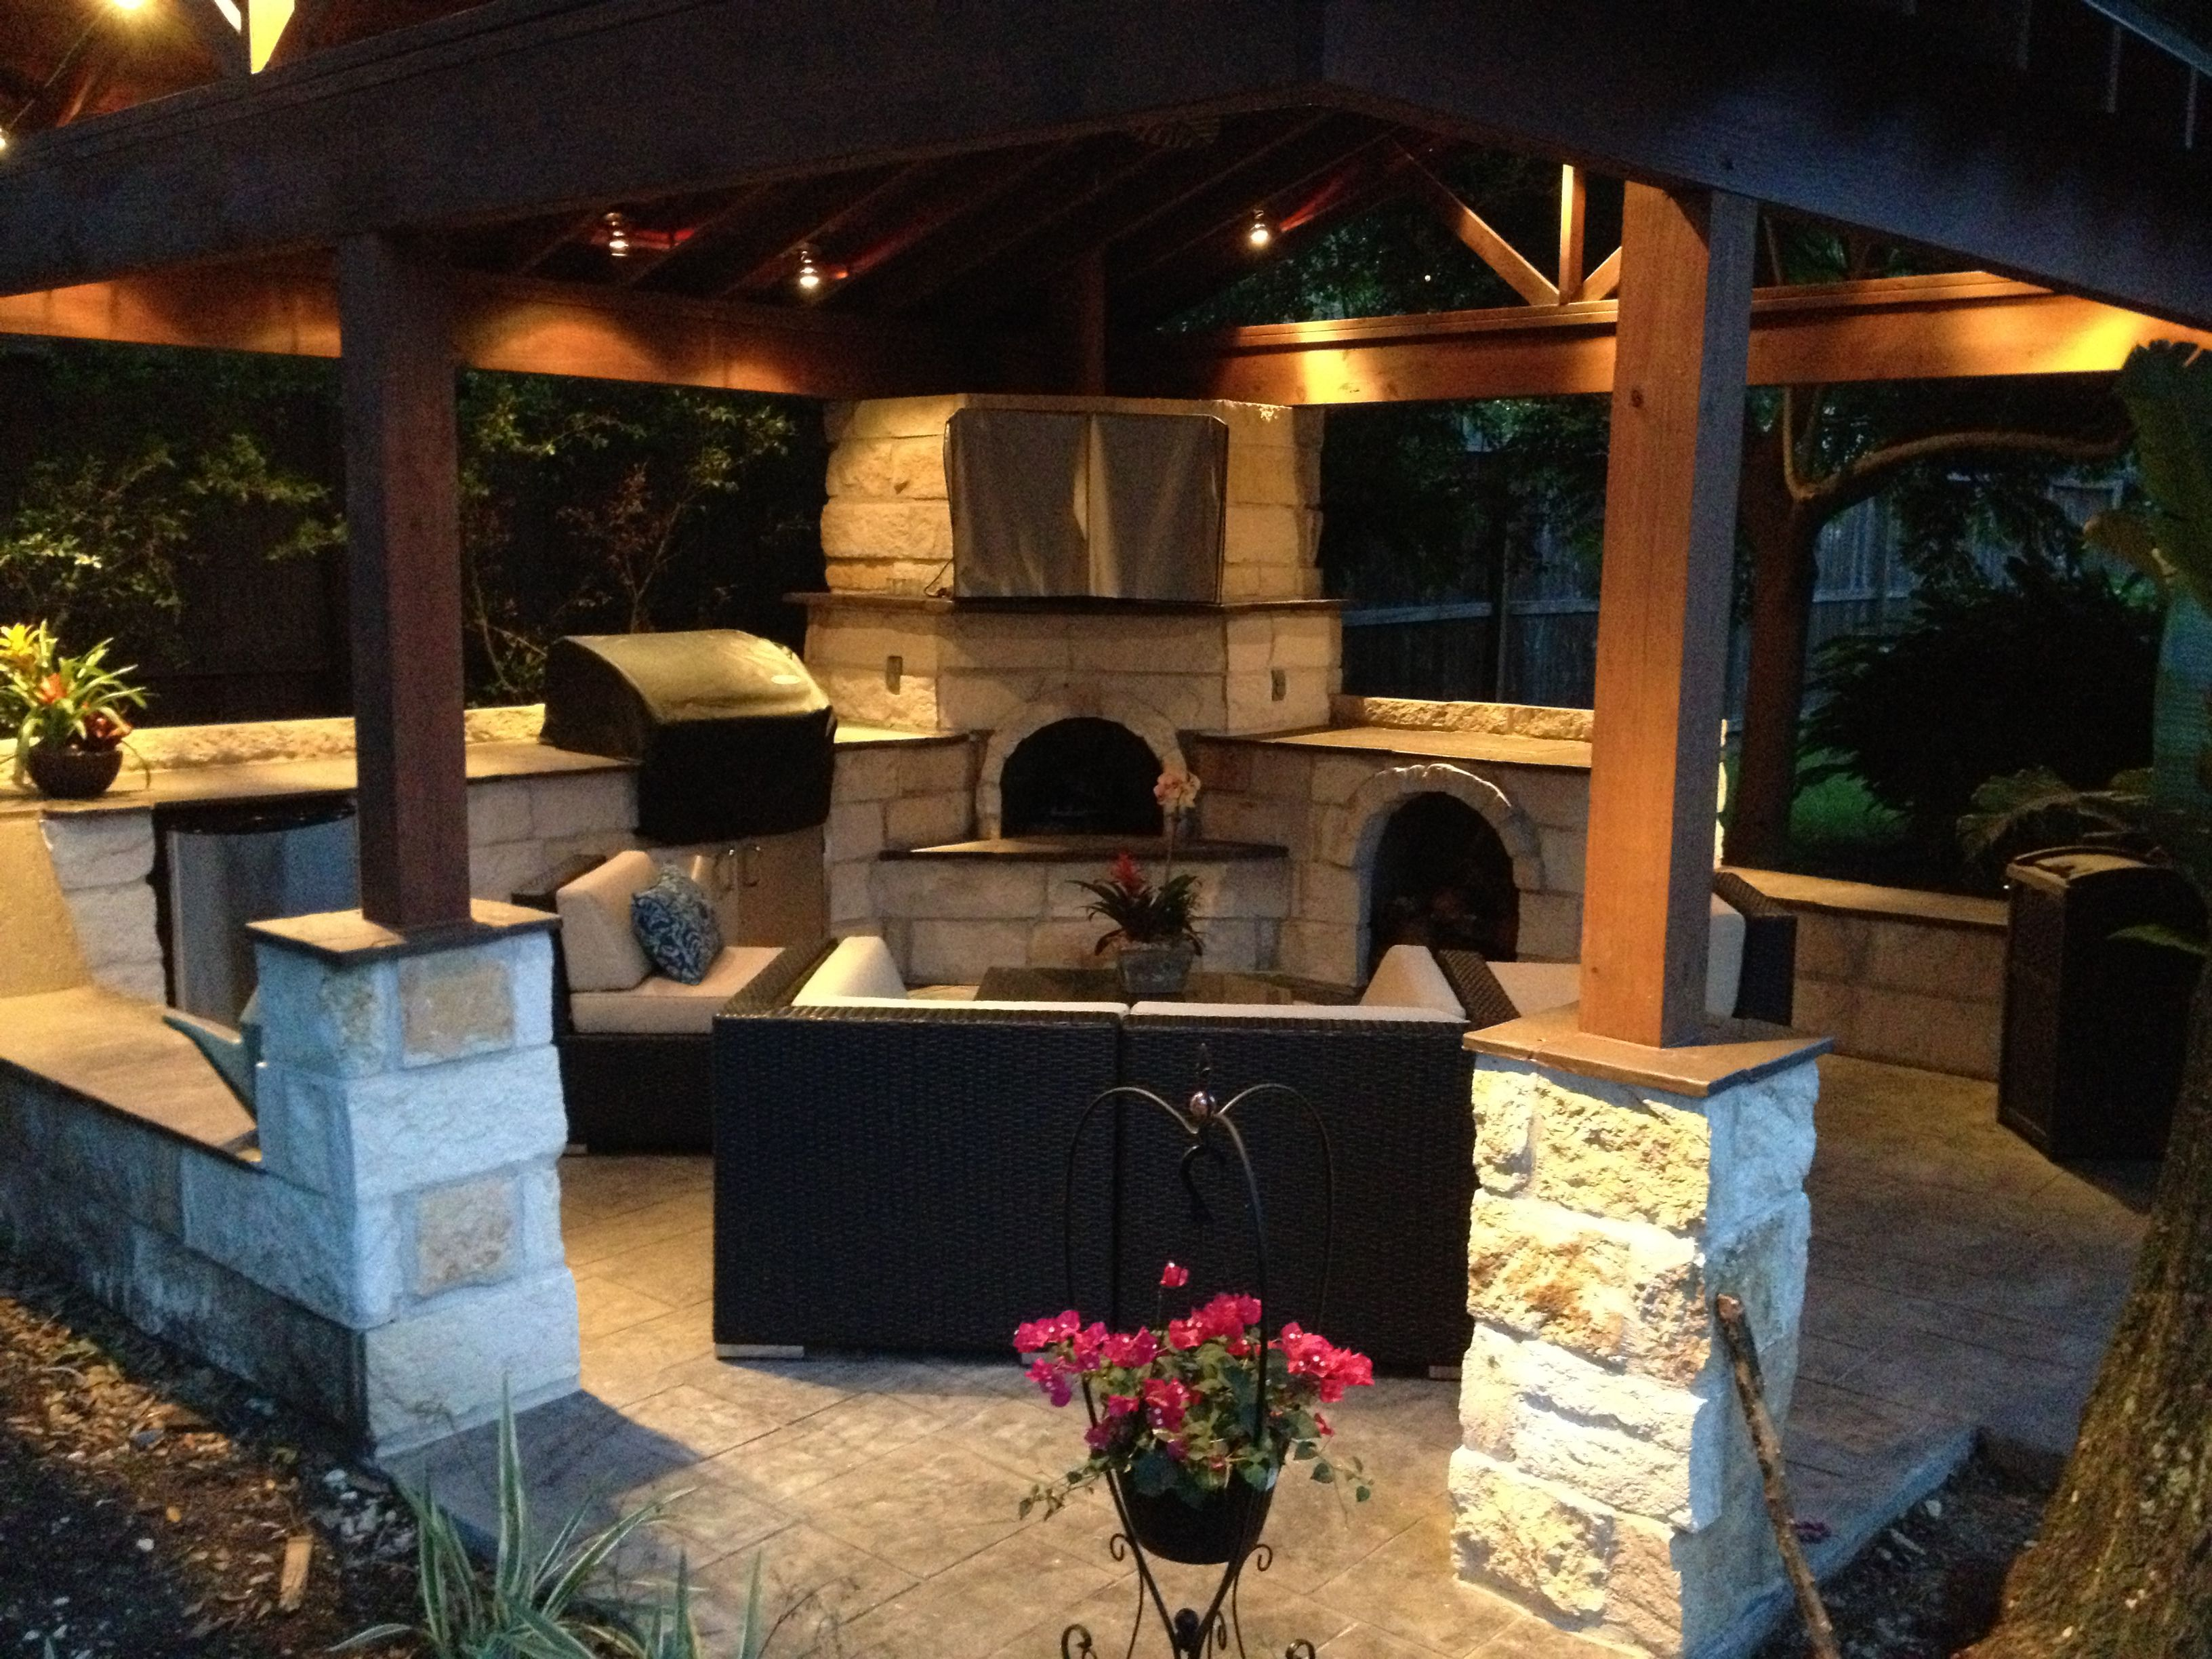 Complete Outdoor Kitchen Fireplace And Seating With Pergola And Led Lighting Outdoor Kitchen Outdoor Living Areas Patio